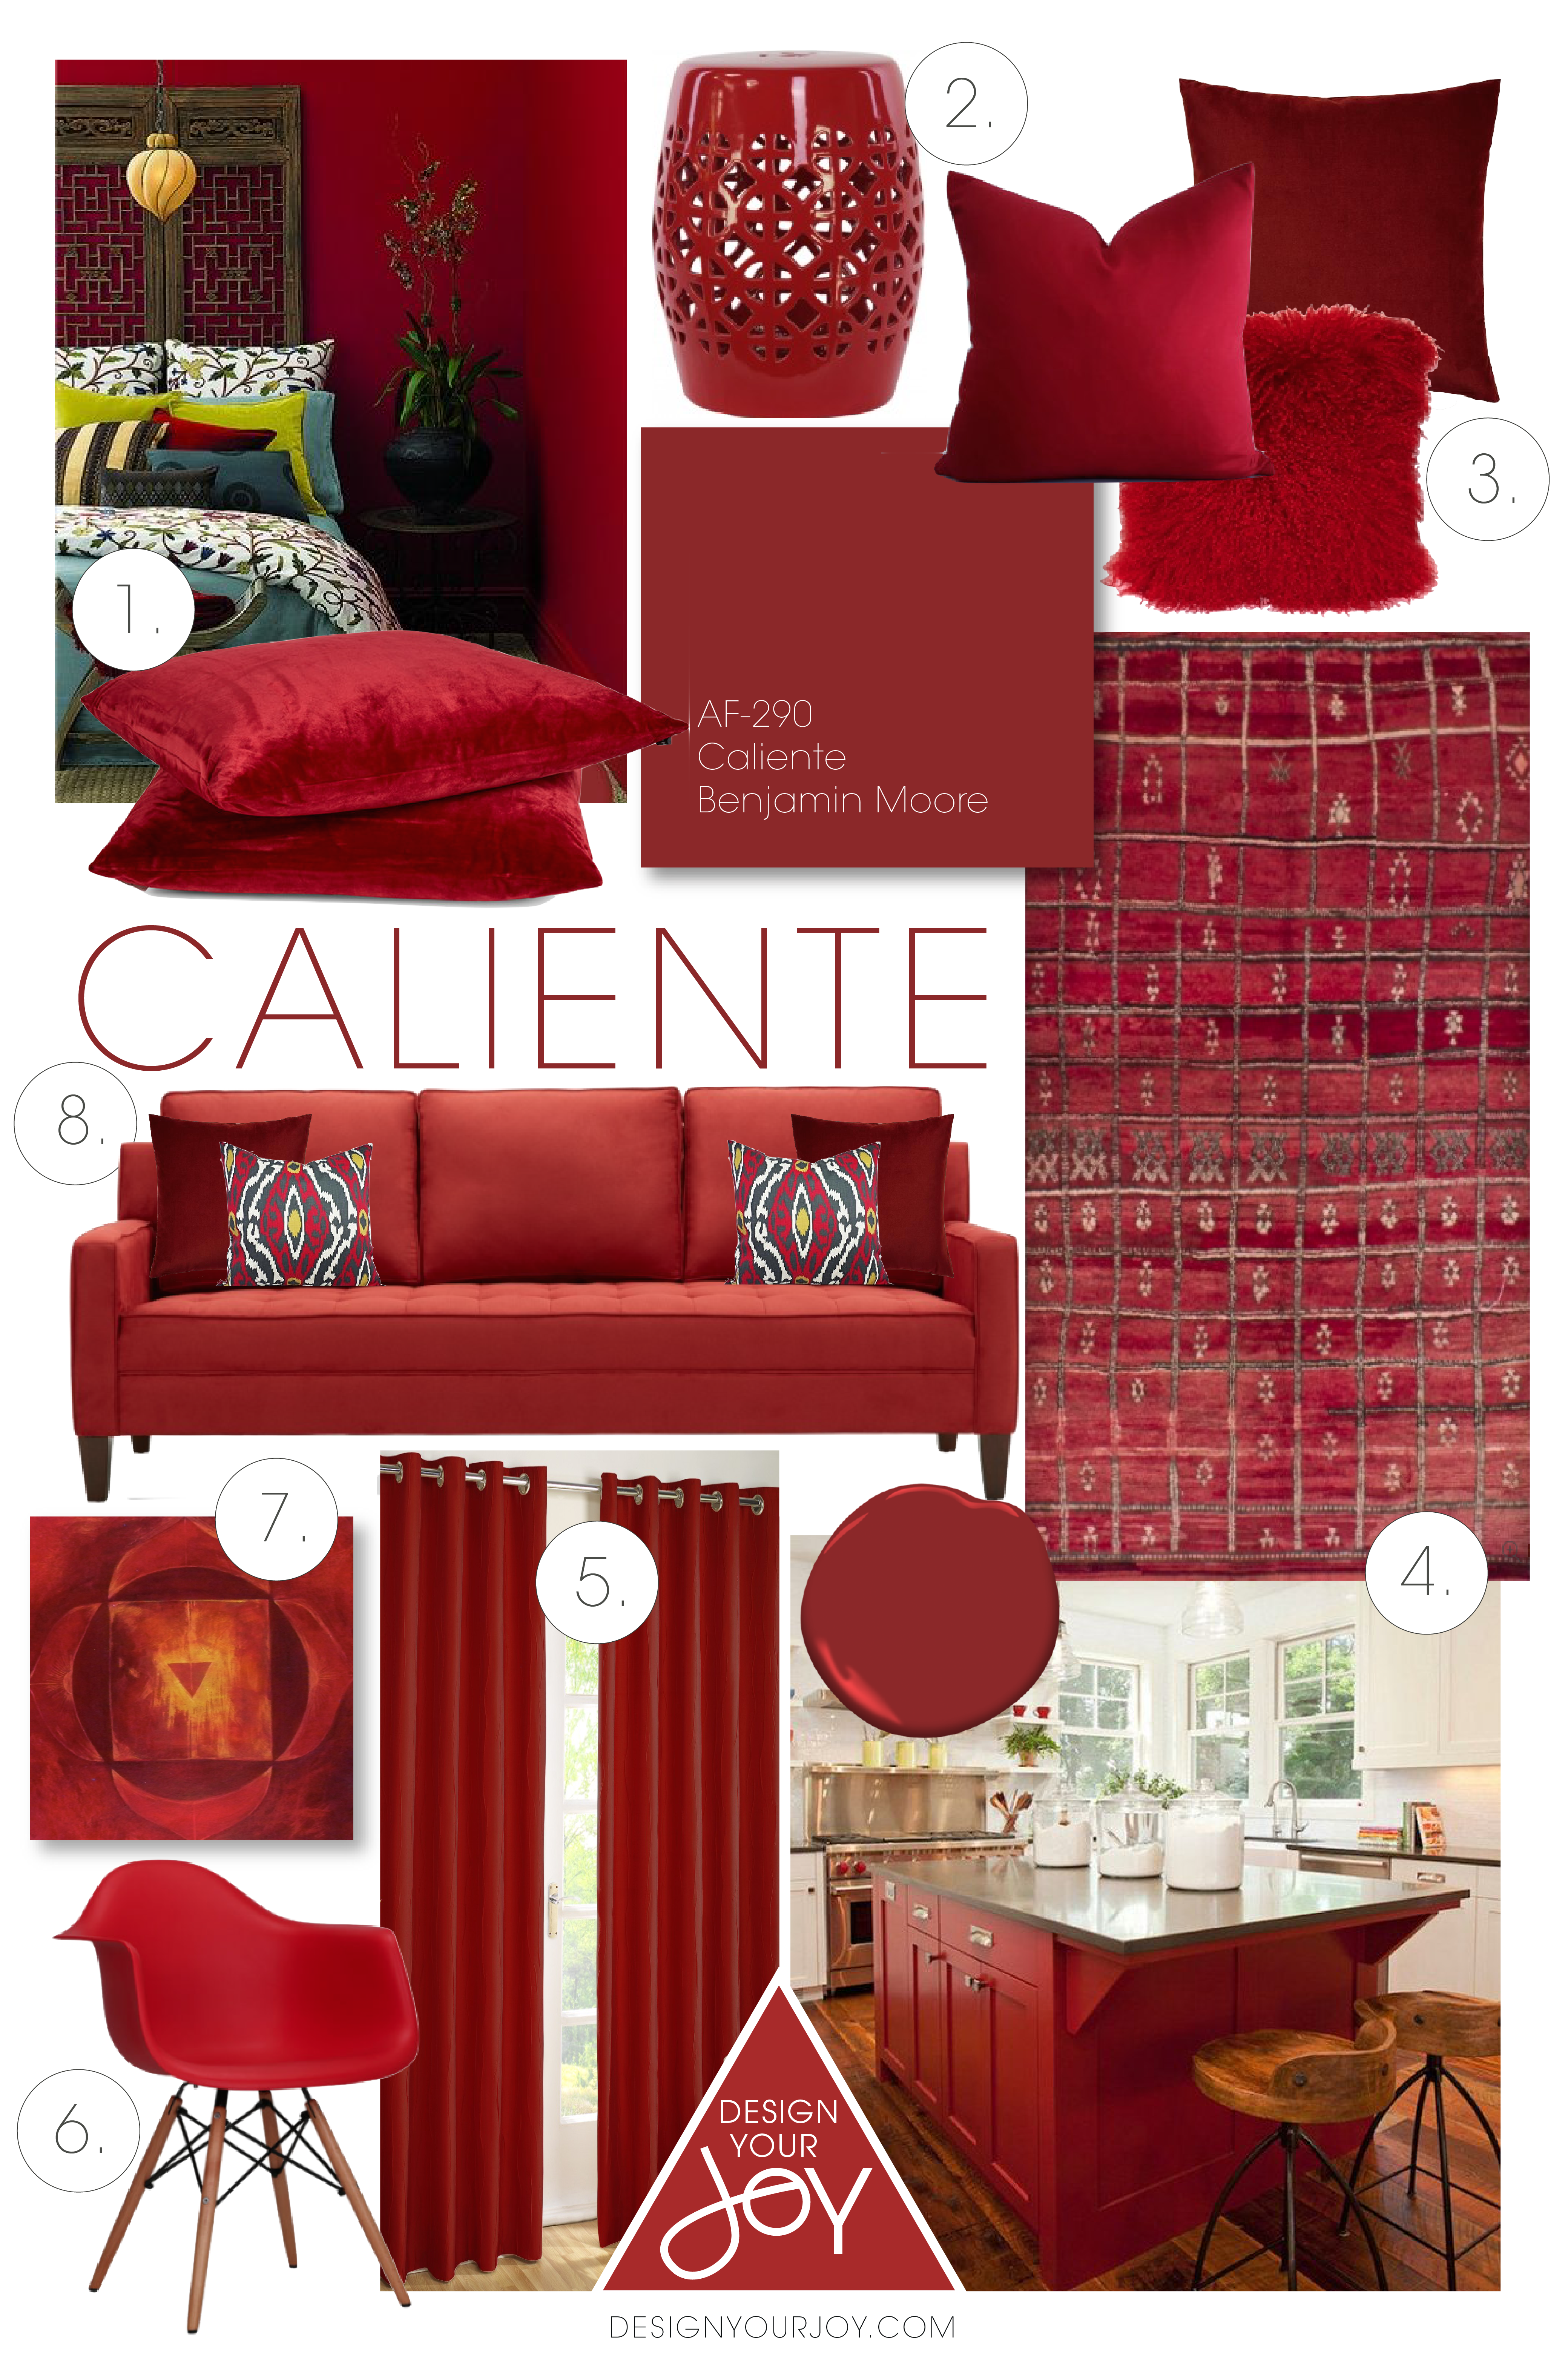 Caliente By Benjamin Moore Was Just Announced To Be The Colour Of 2018 Here Is A Styleboard Showcase This Hot Red And Show You How Use It As